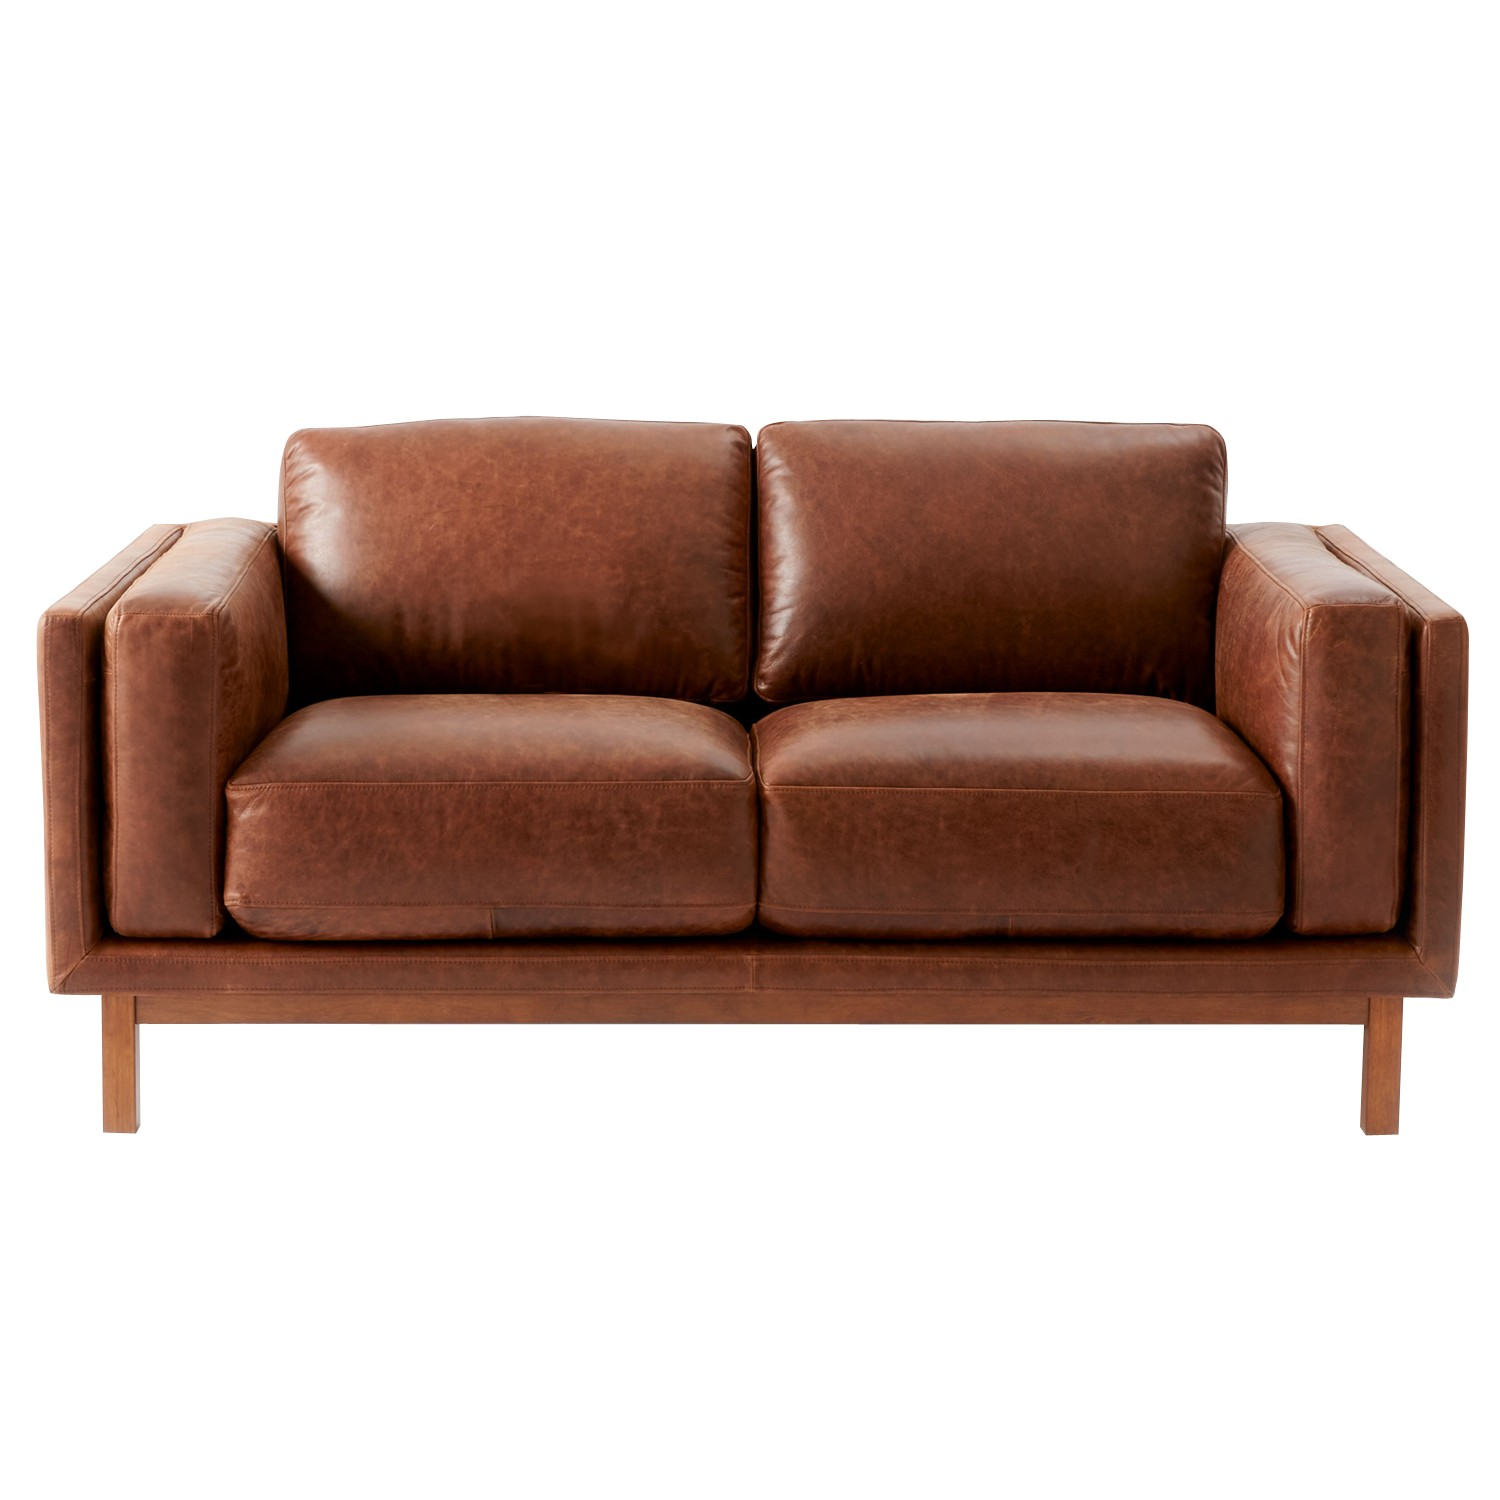 John lewis sofa bed clearance john lewis siesta small for Sofa bed online shopping